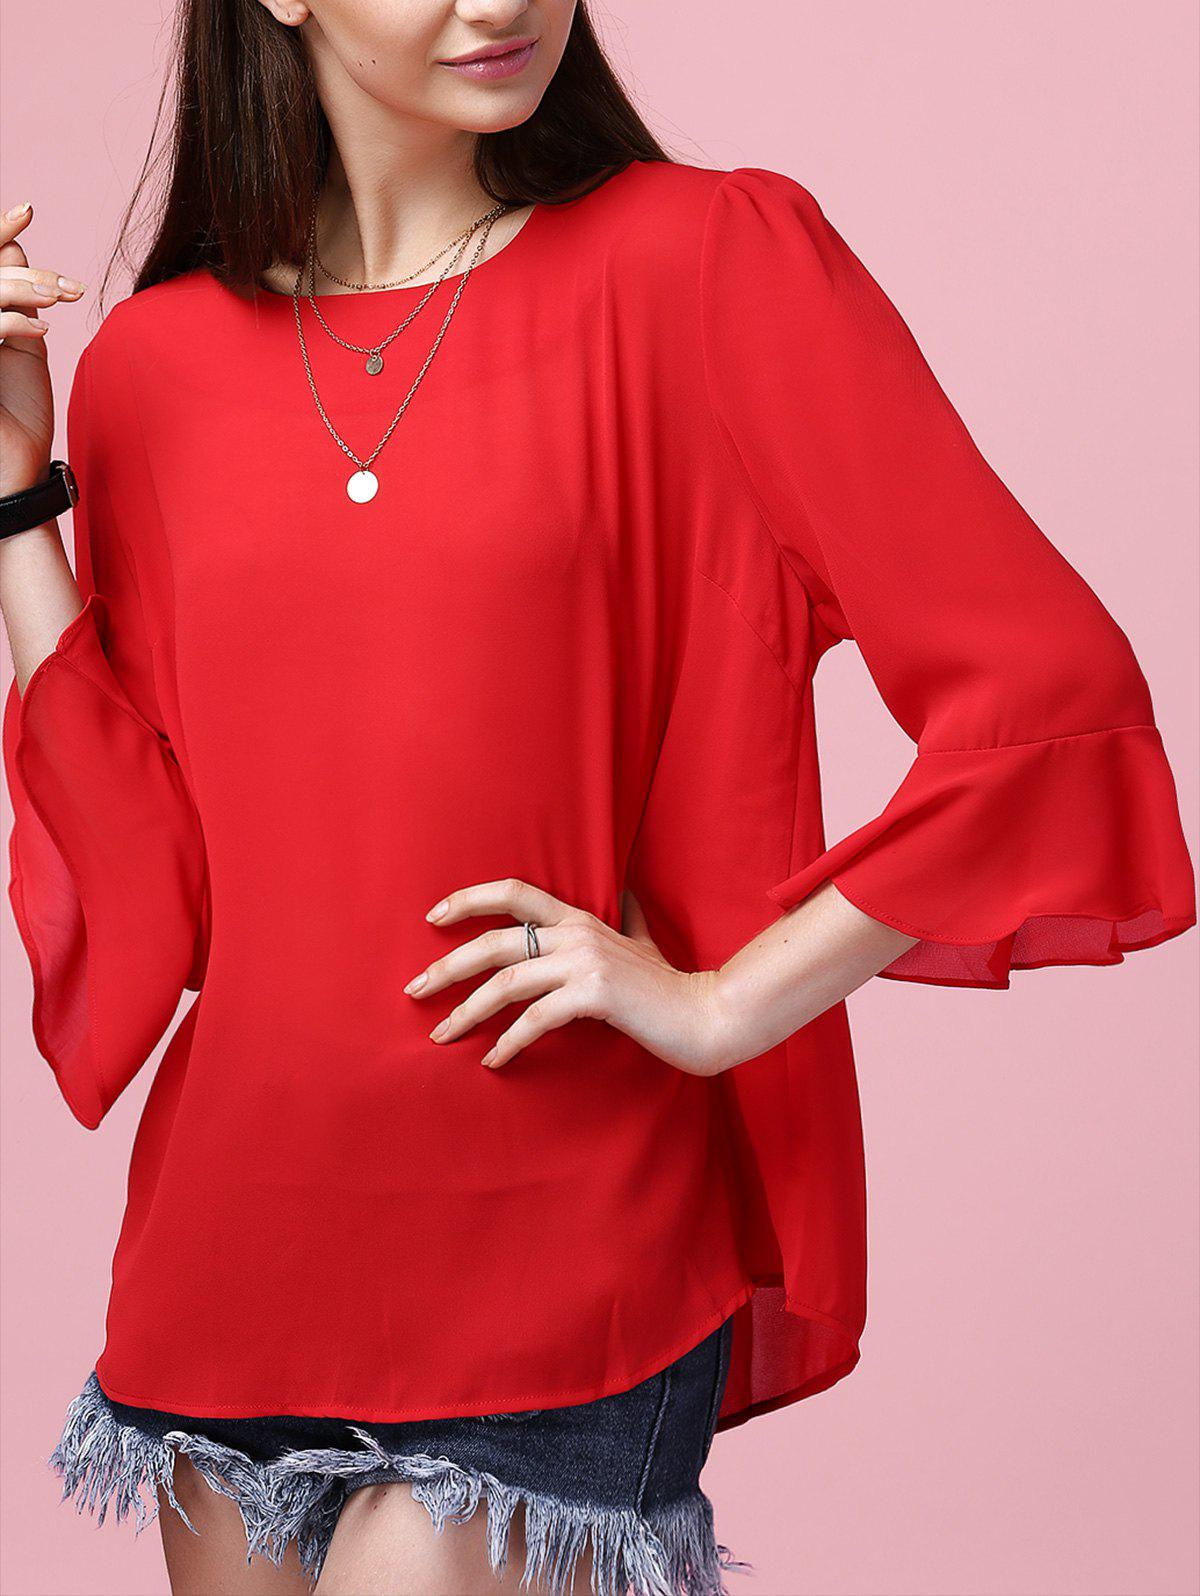 Women's Flare Sleeve Round Neck Chiffon Blouse - RED 4XL